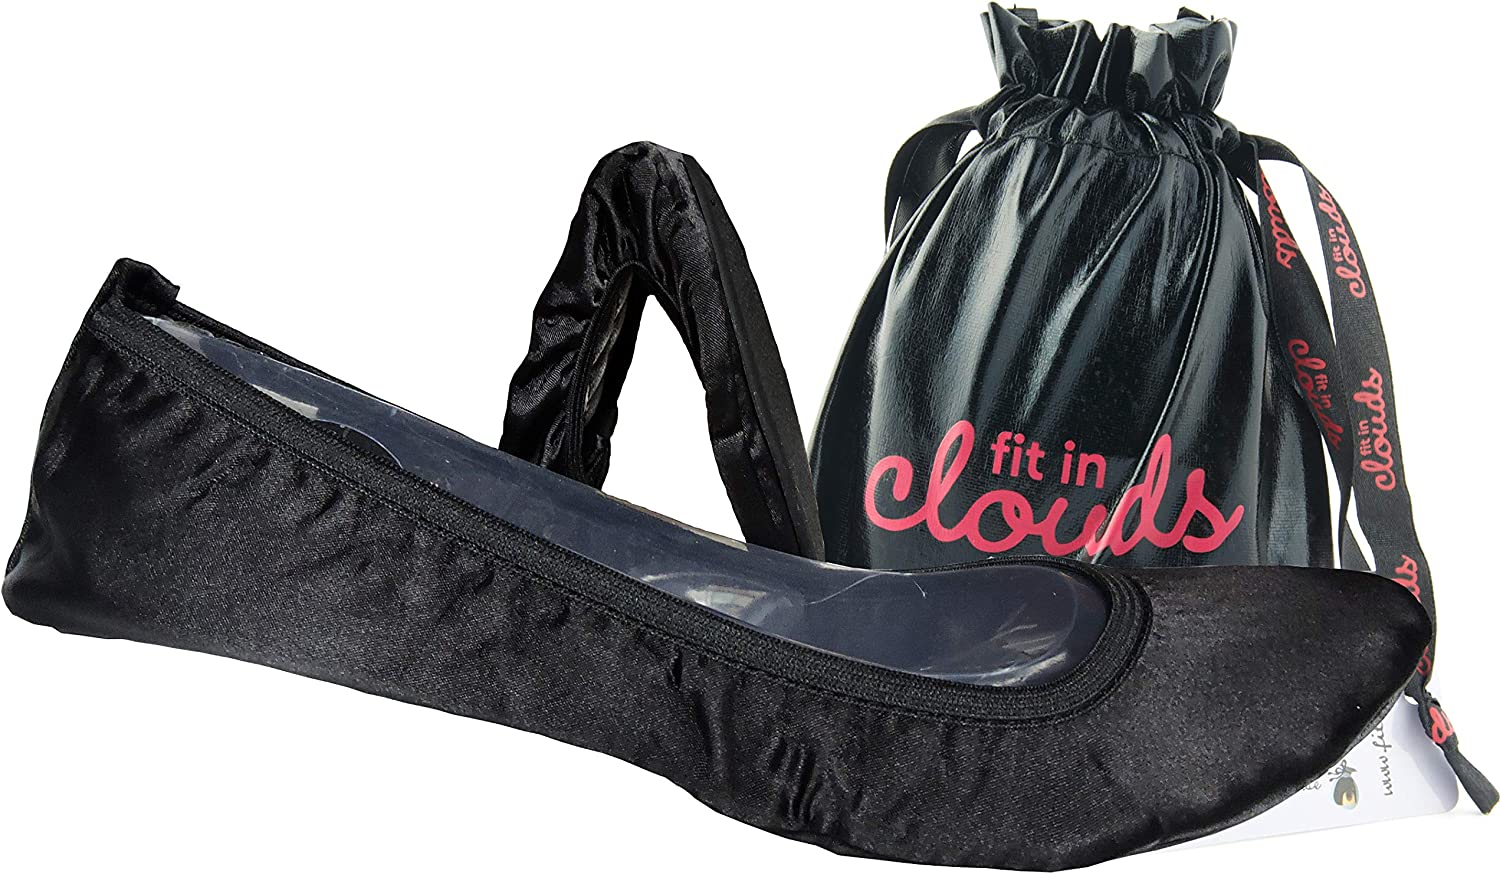 Fit in Clouds Satin Al sold out. Portable Folding 100% quality warranty Bag Flats with for Everyday